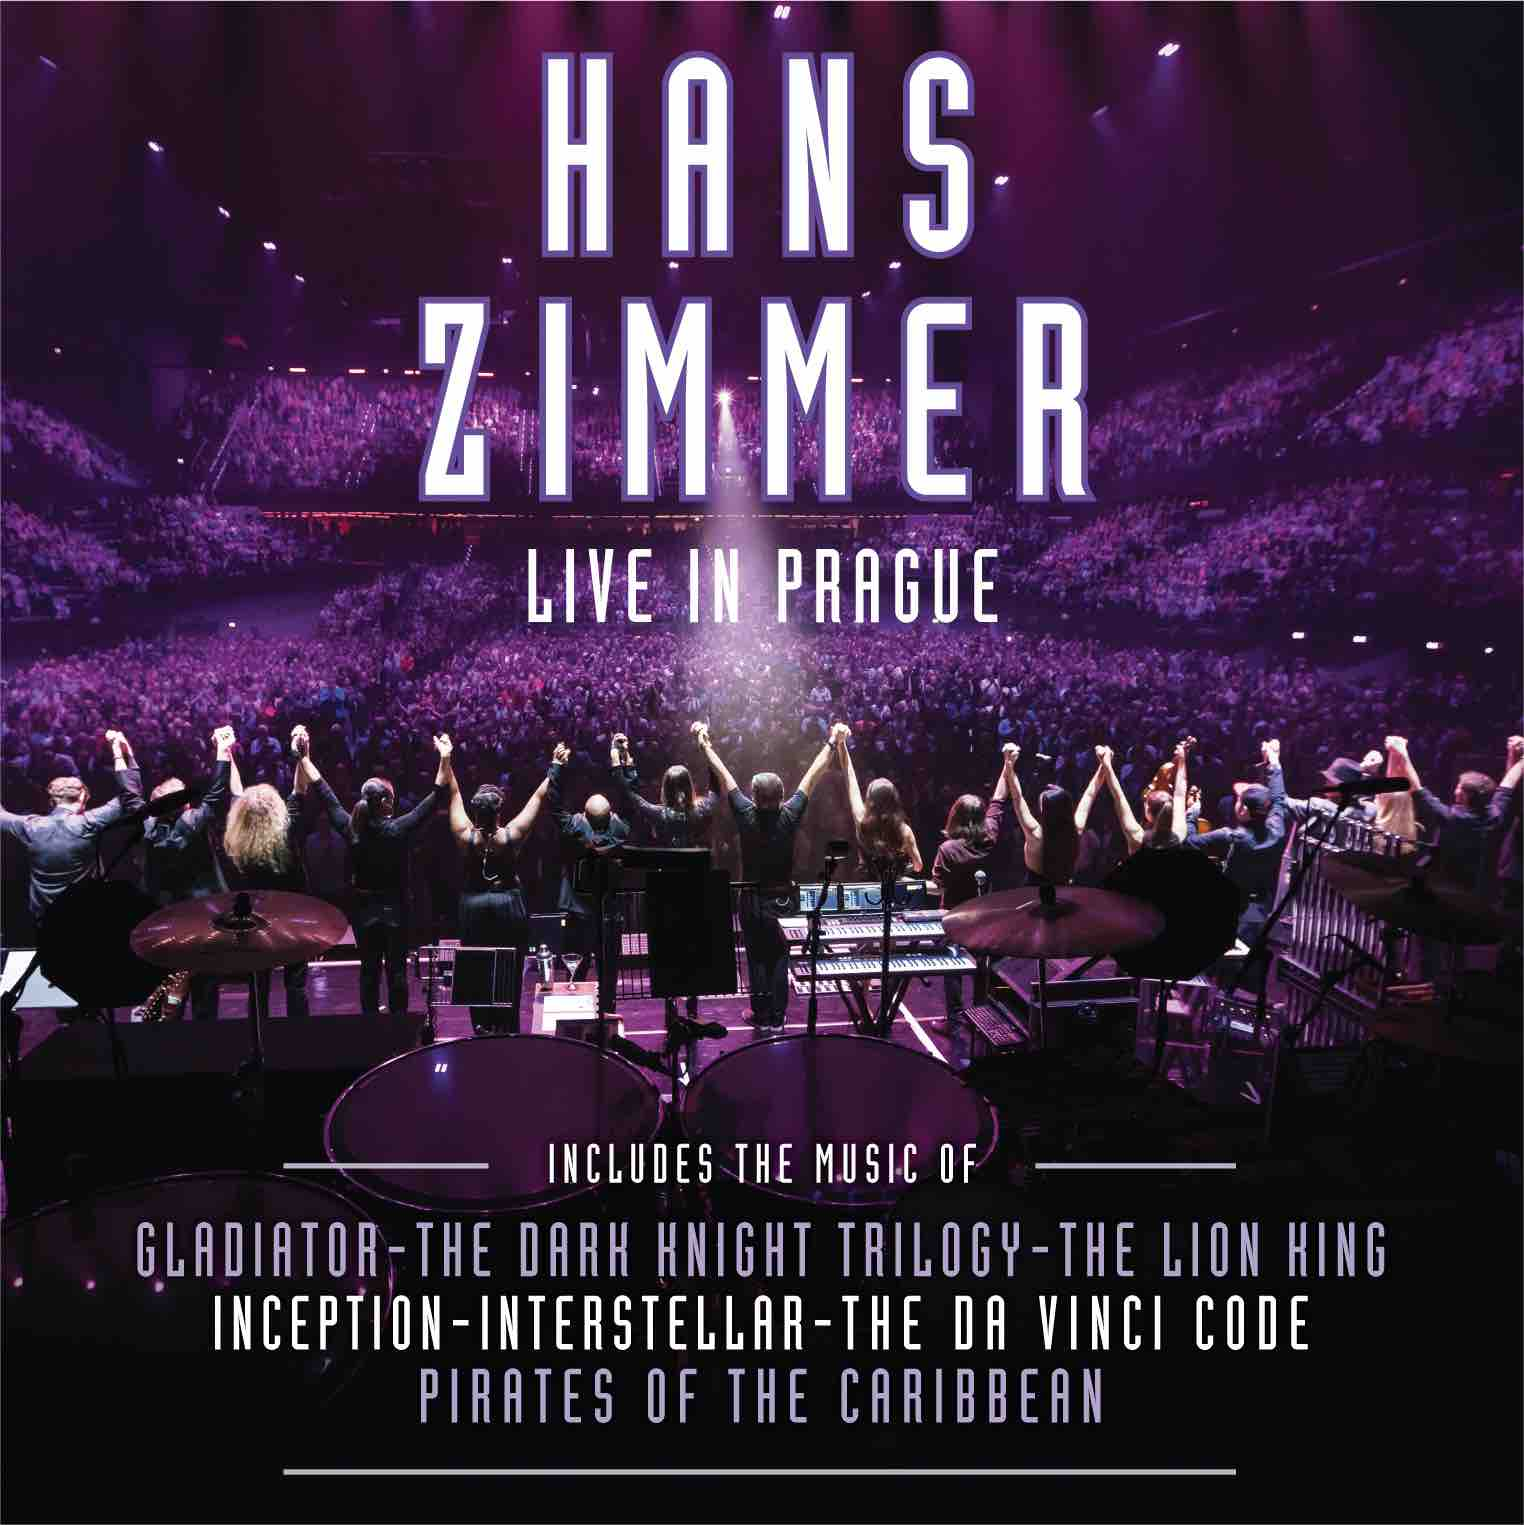 Hans Zimmer Live In Prague CD cover